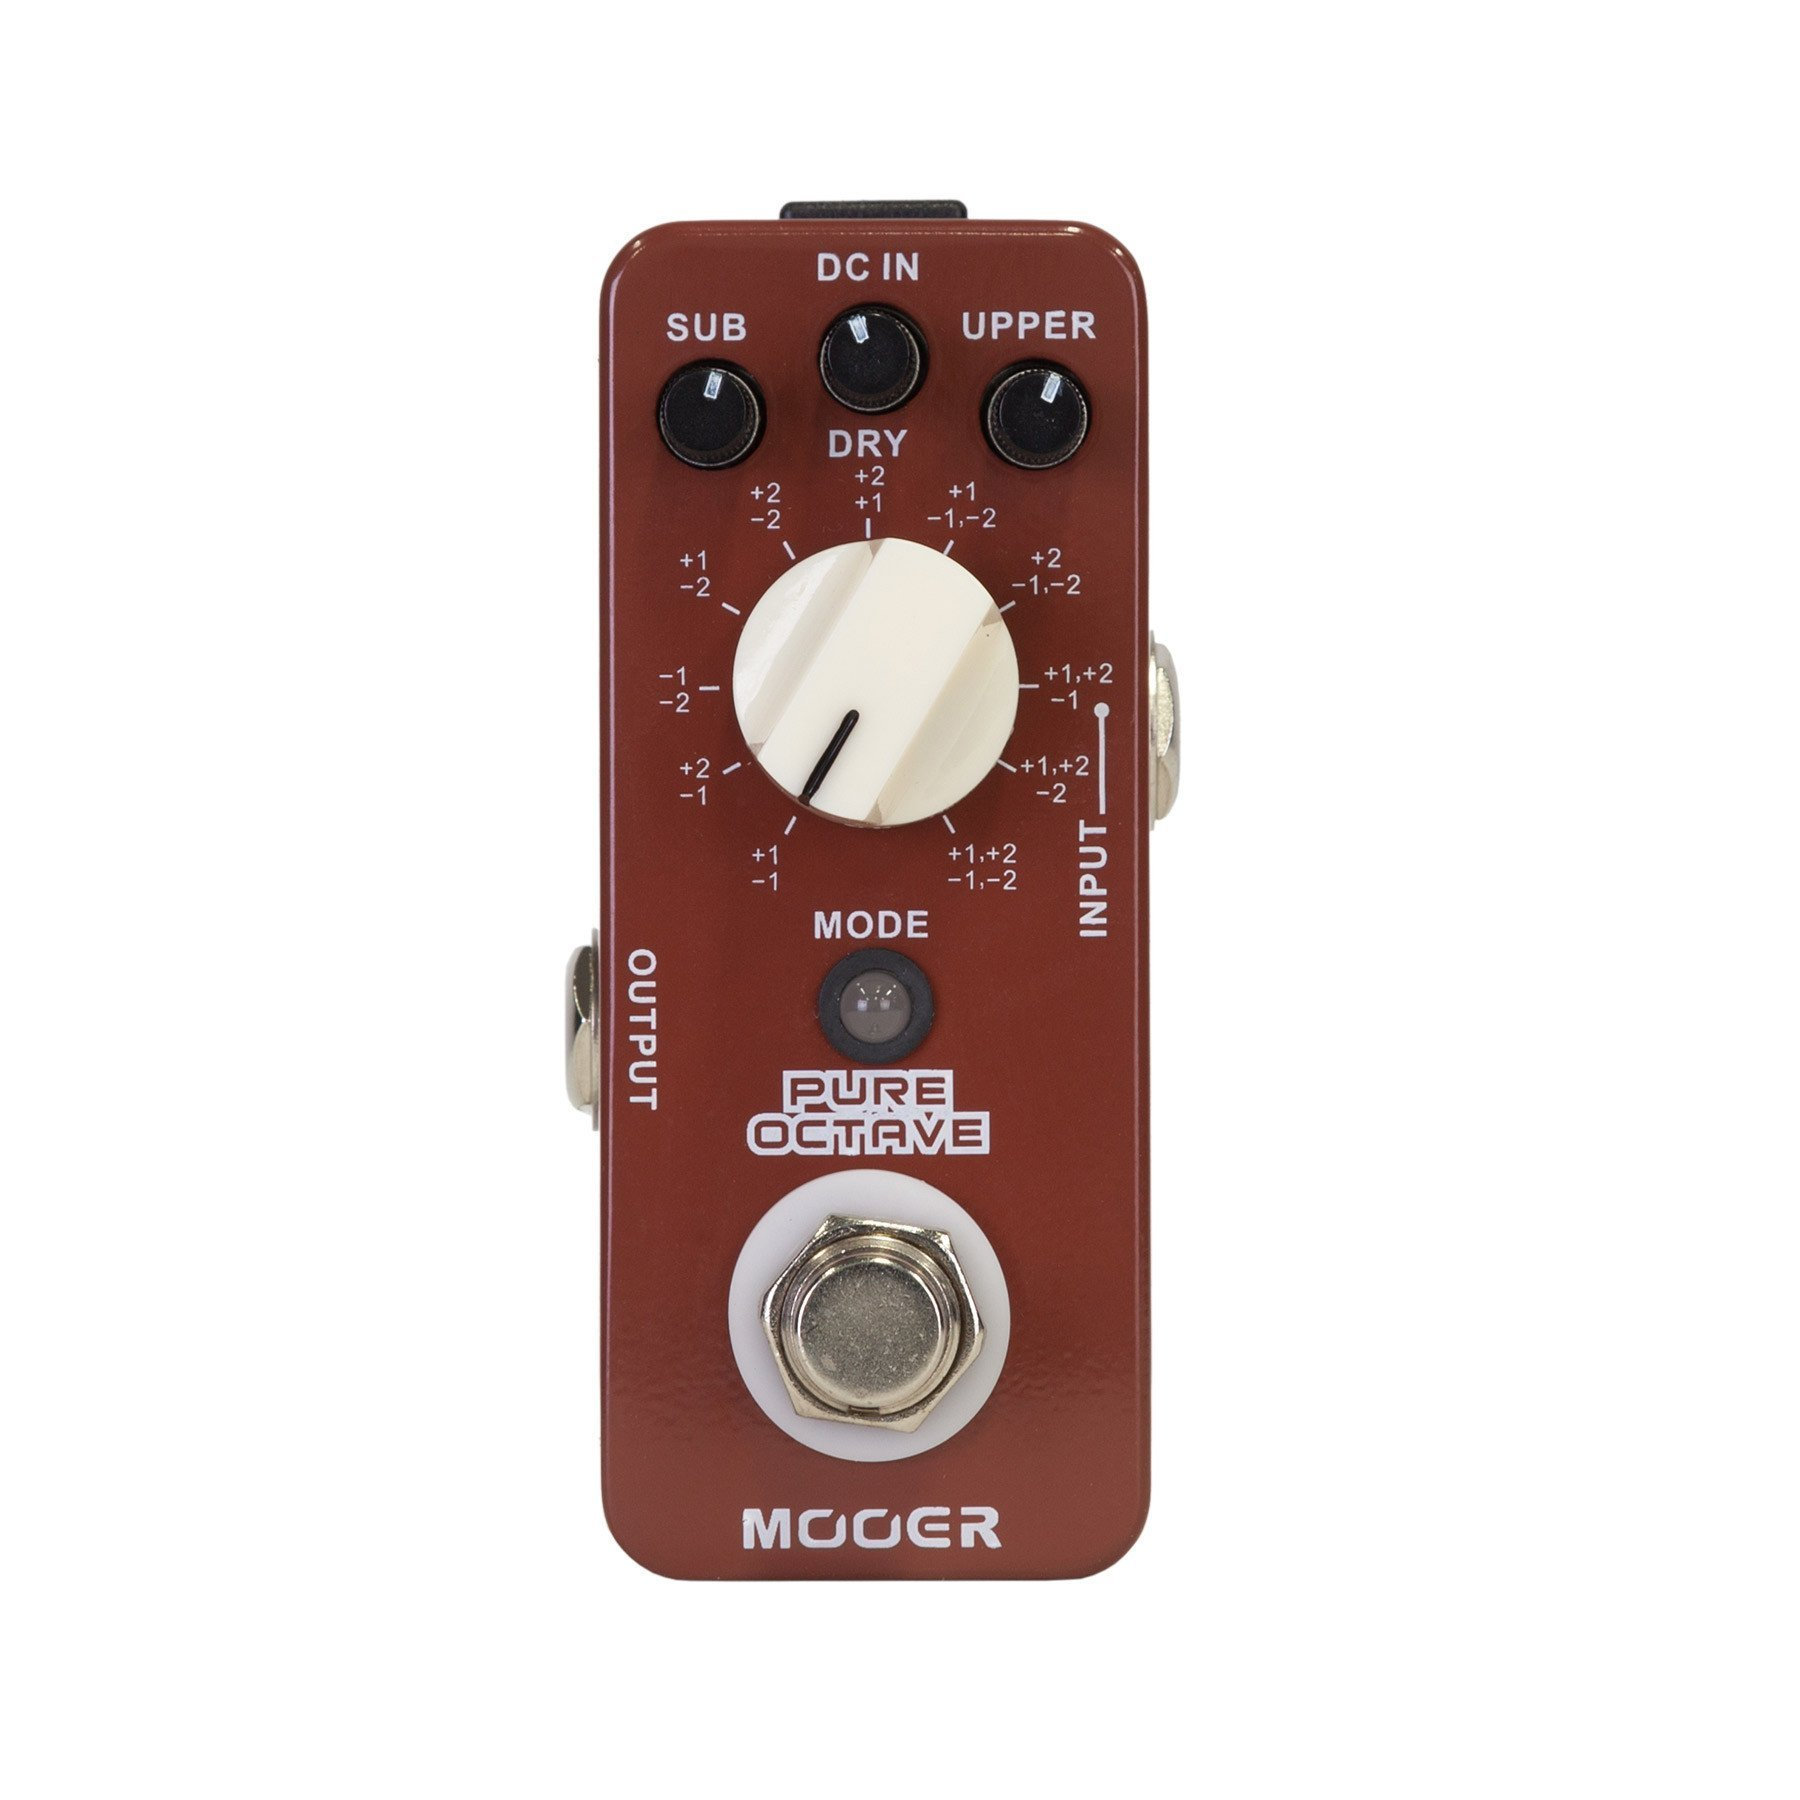 mooer pure octave polyphonic octave micro guitar effects pedal kew music garage. Black Bedroom Furniture Sets. Home Design Ideas